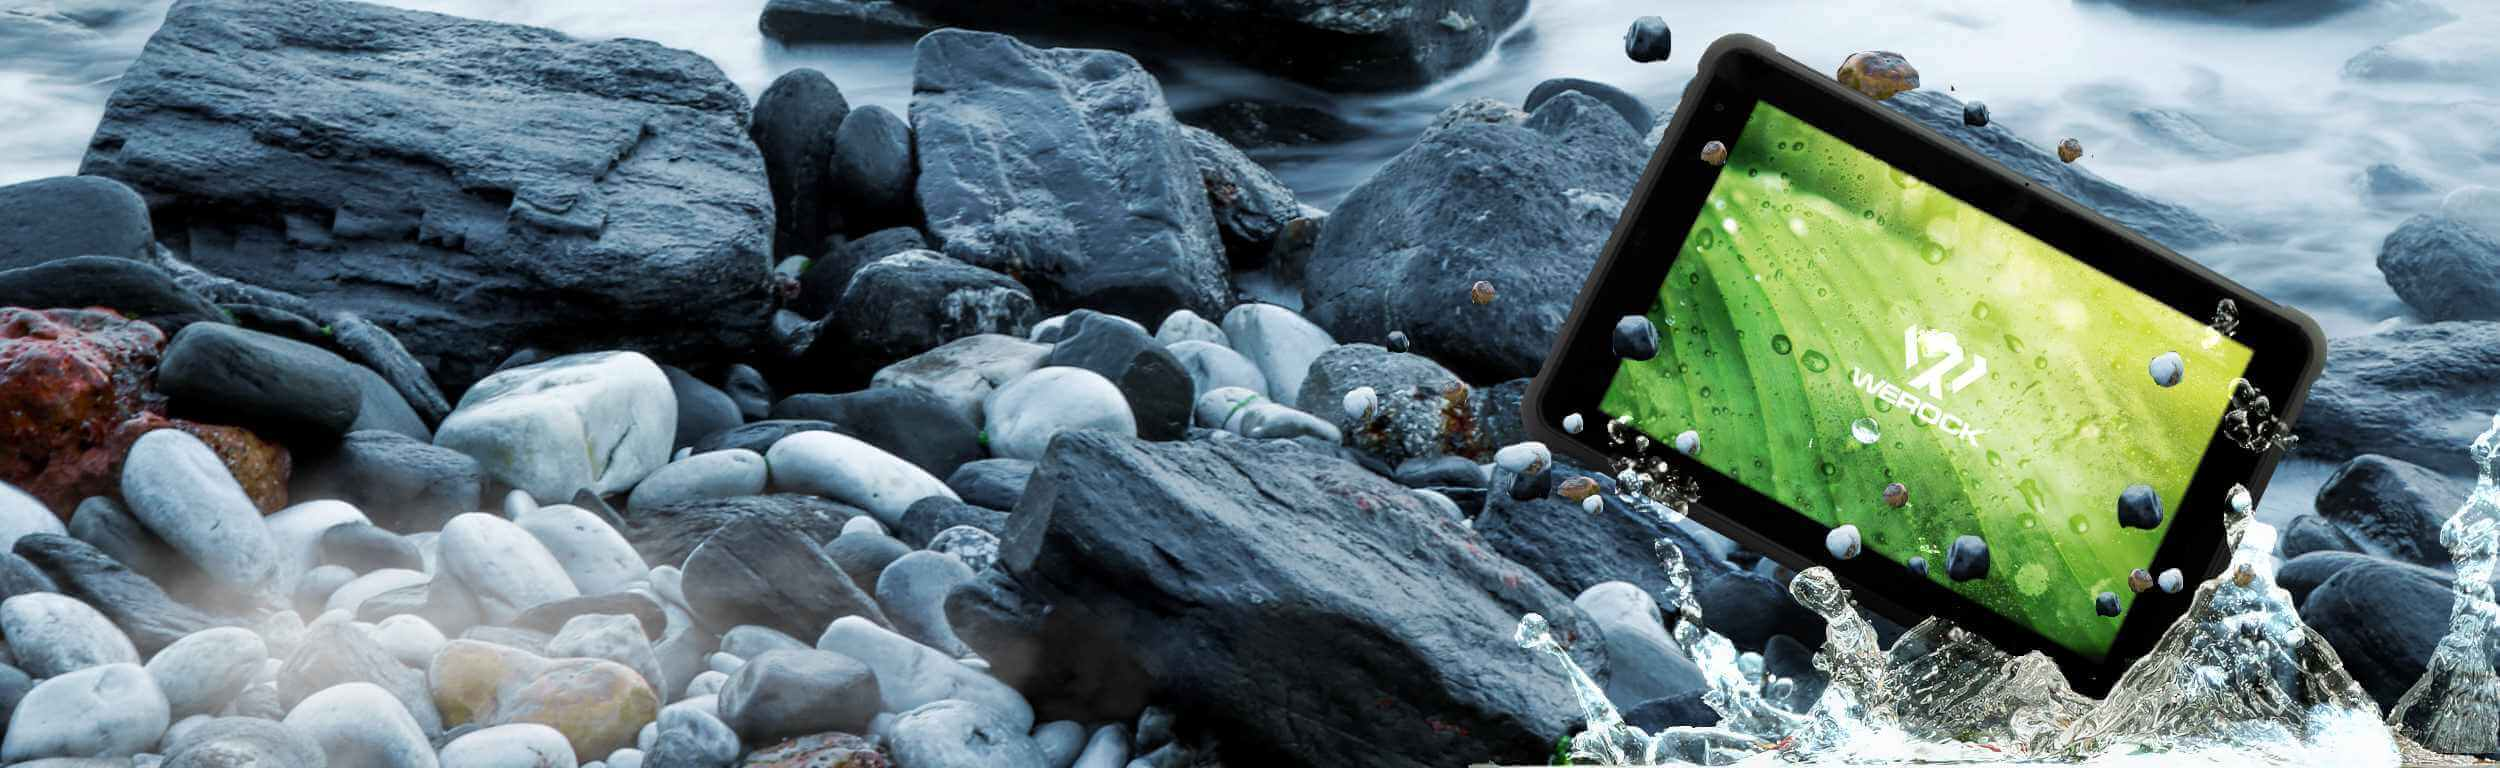 Rocktab S110 Rugged Tablet falling down into a river with stones causing some splashing